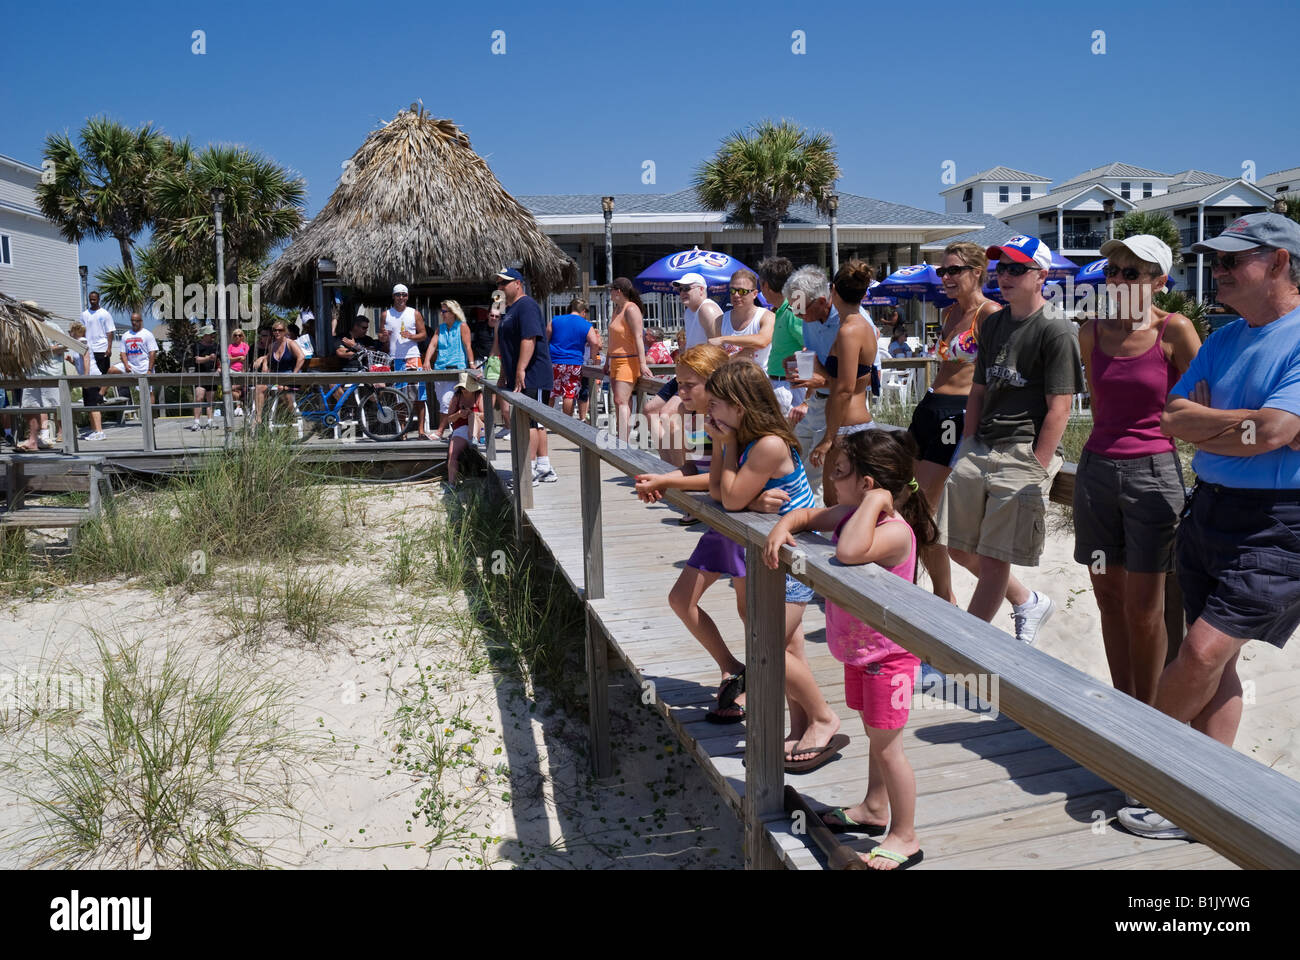 saint george island online dating We're the one stop shop for your vacation needs while on st george island,  florida island adventures offers  online rental request  start date of rental.